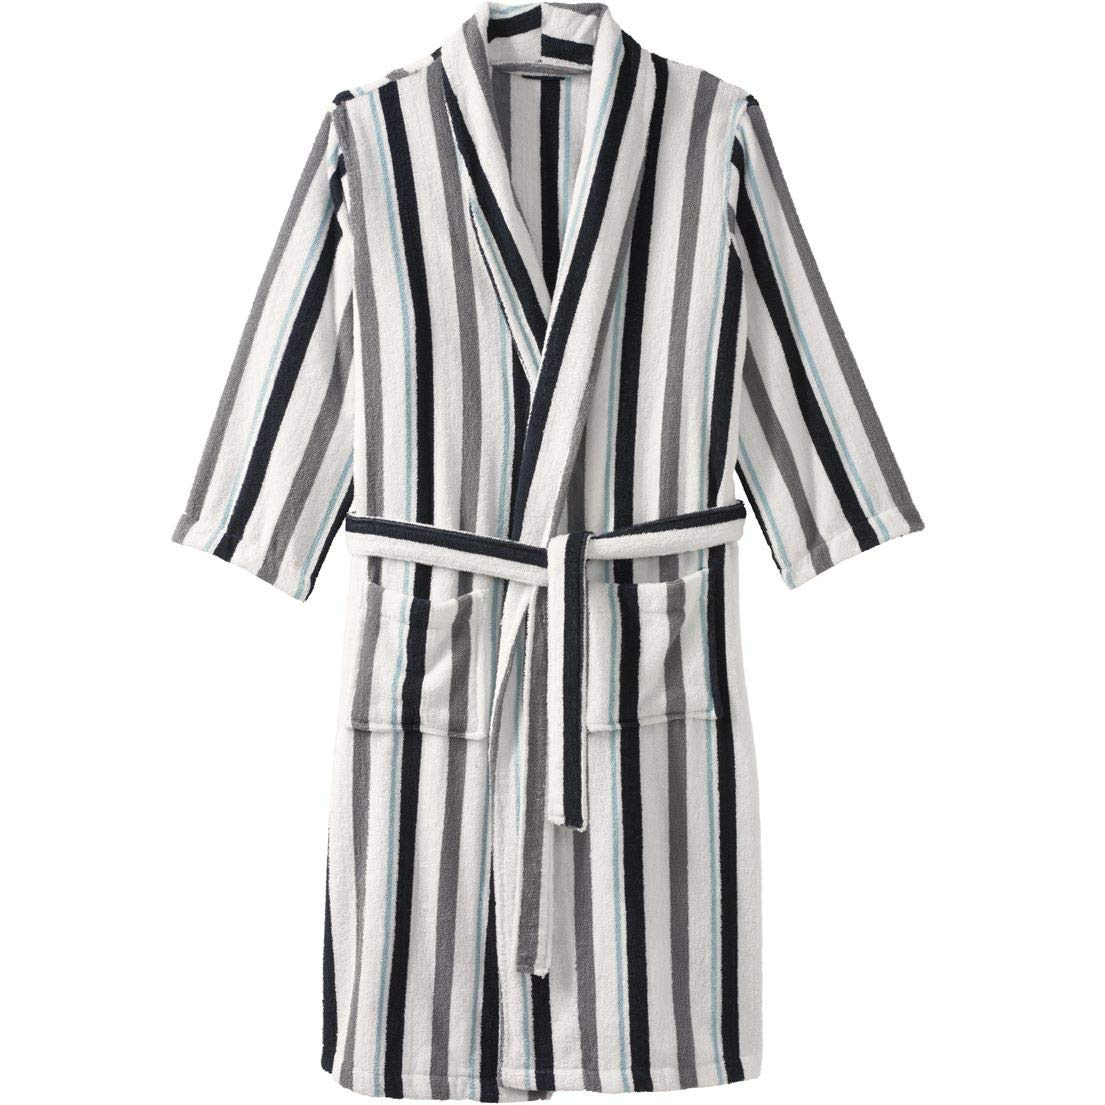 KingSize Men's Big & Tall Terry Bathrobe with Pockets, White Stripe Tall-L/X